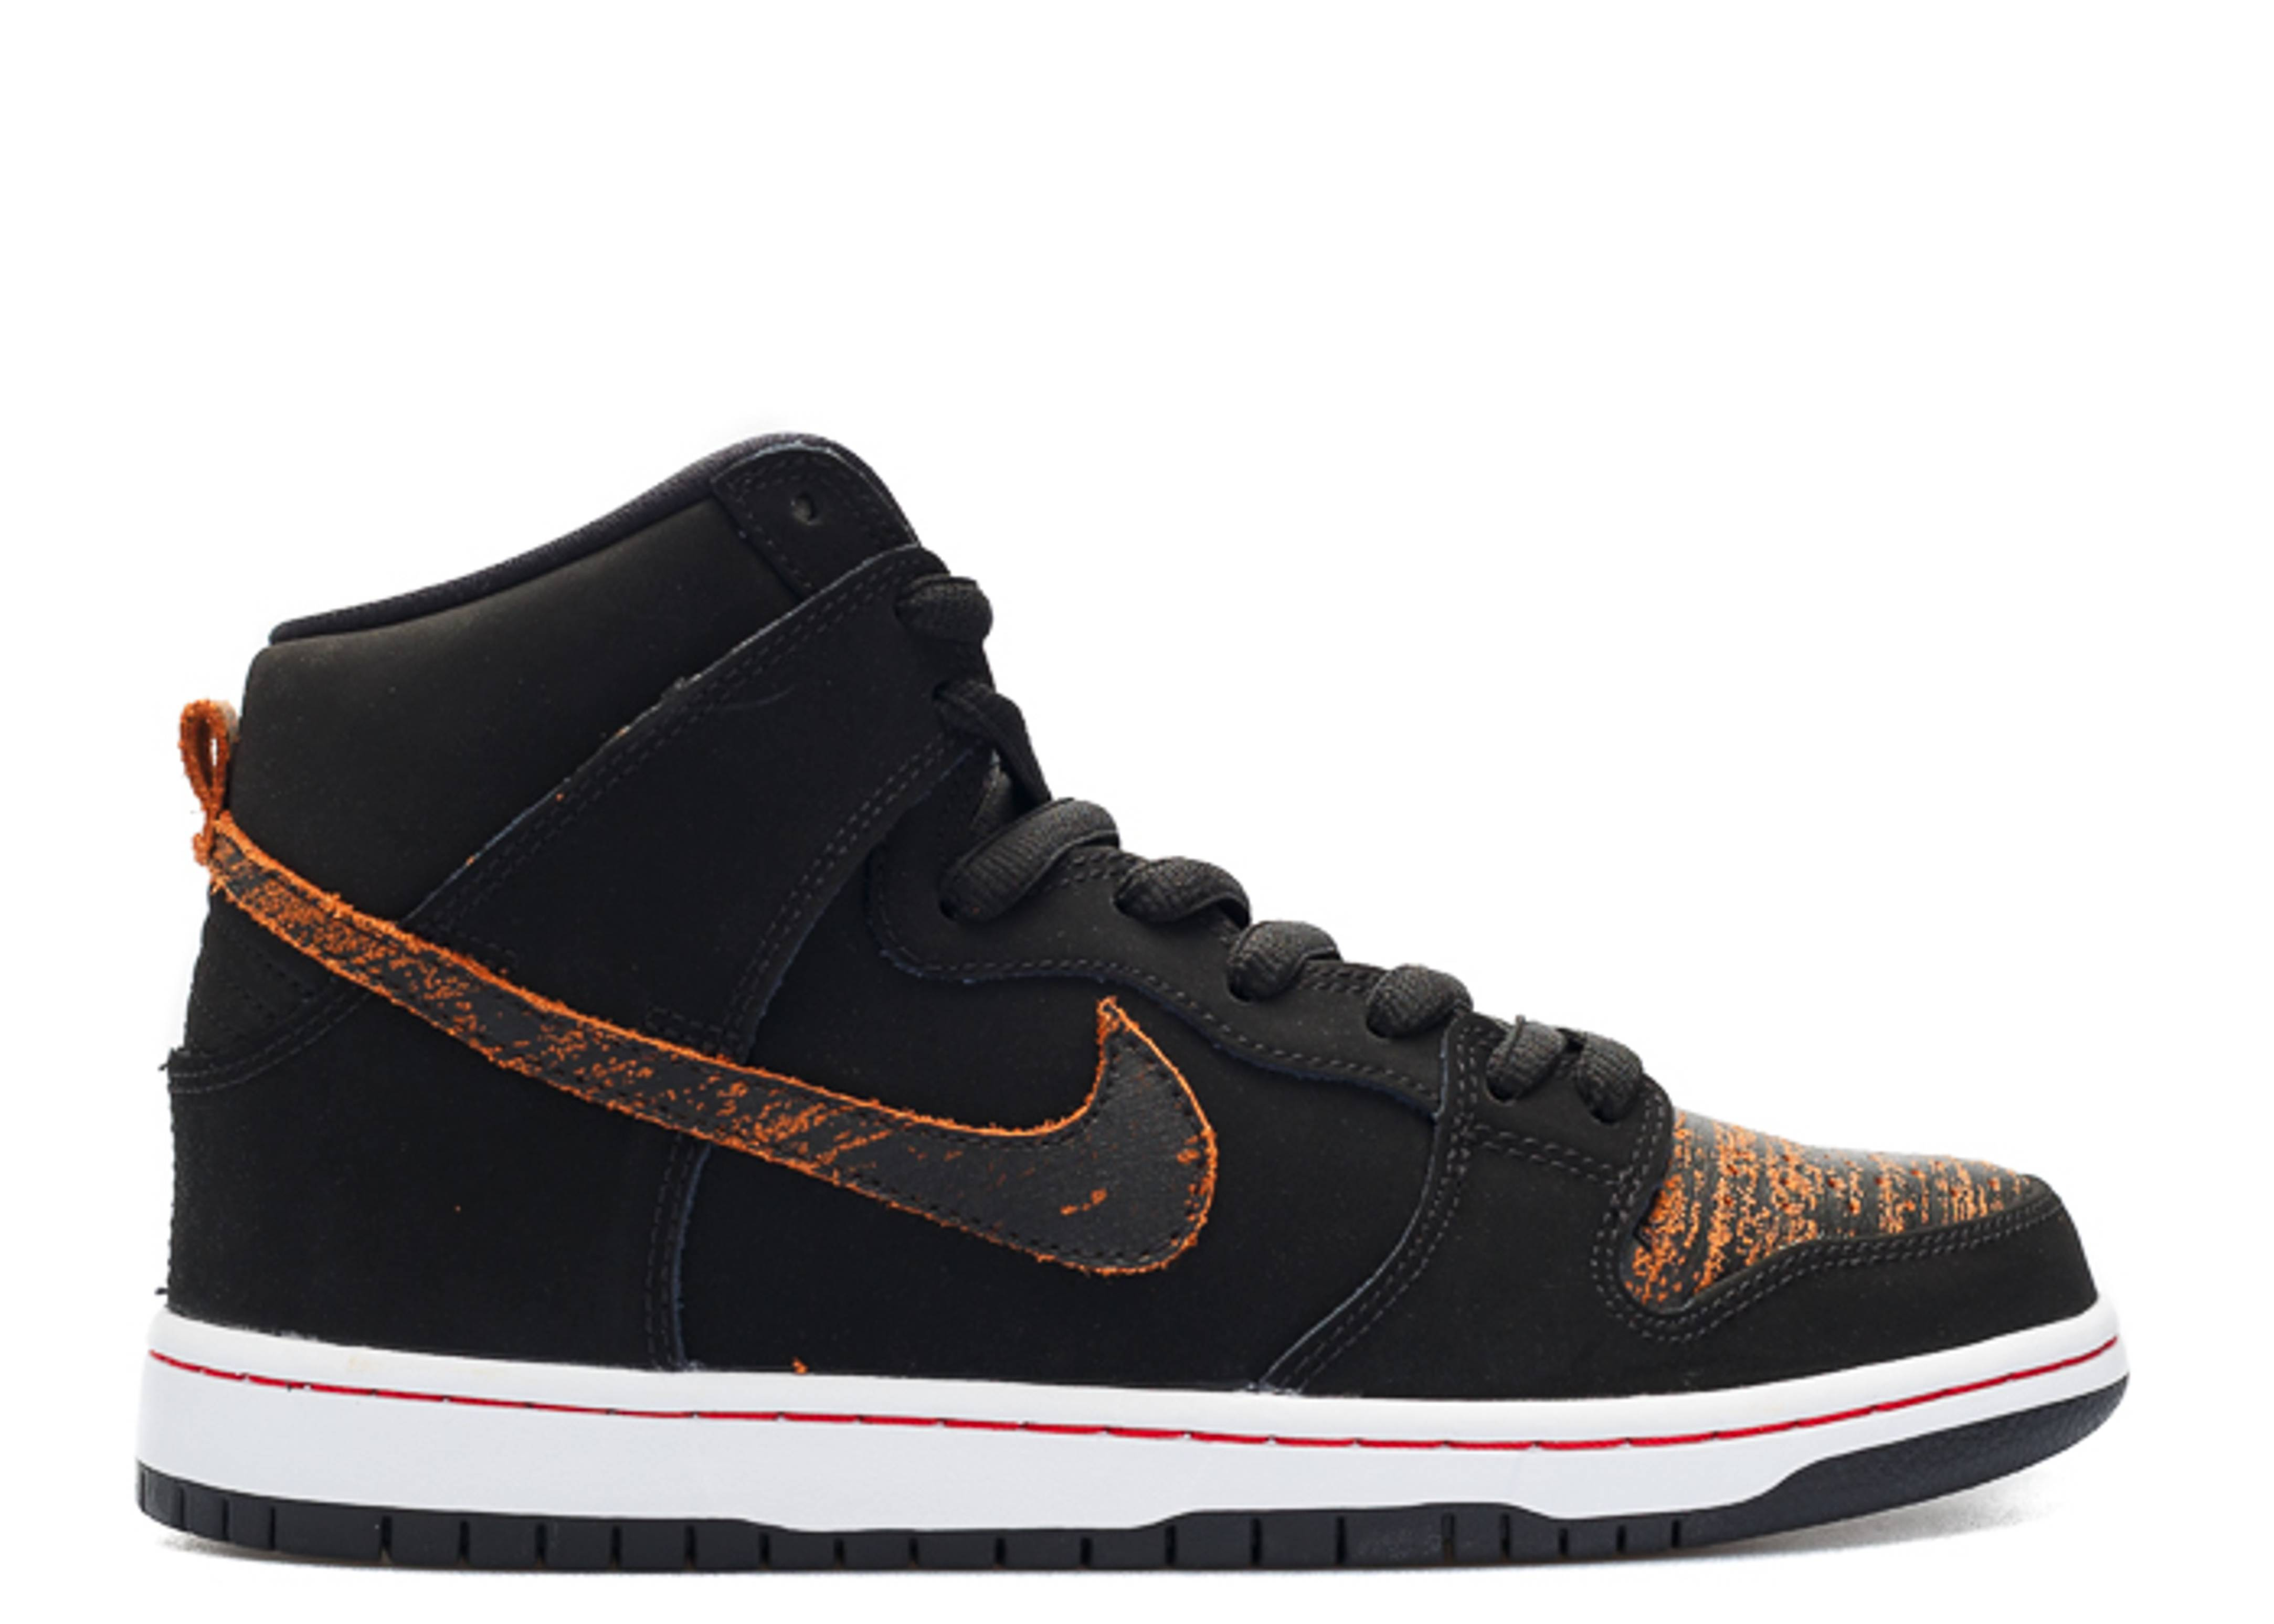 buying new official supplier reliable quality dunk high pro sb